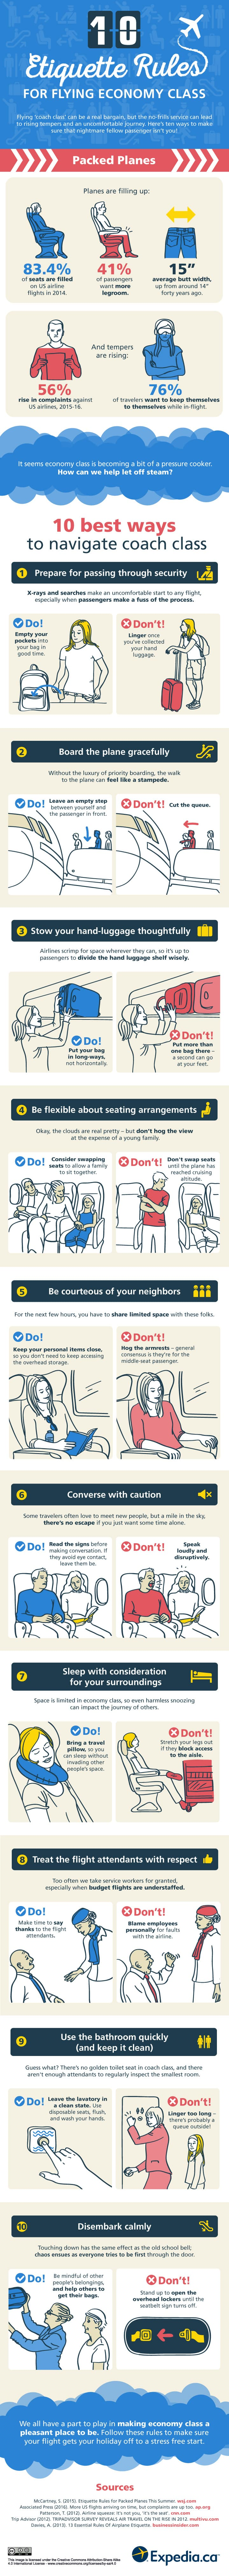 A timely reminder of the 10 essential etiquette rules for flying economy class